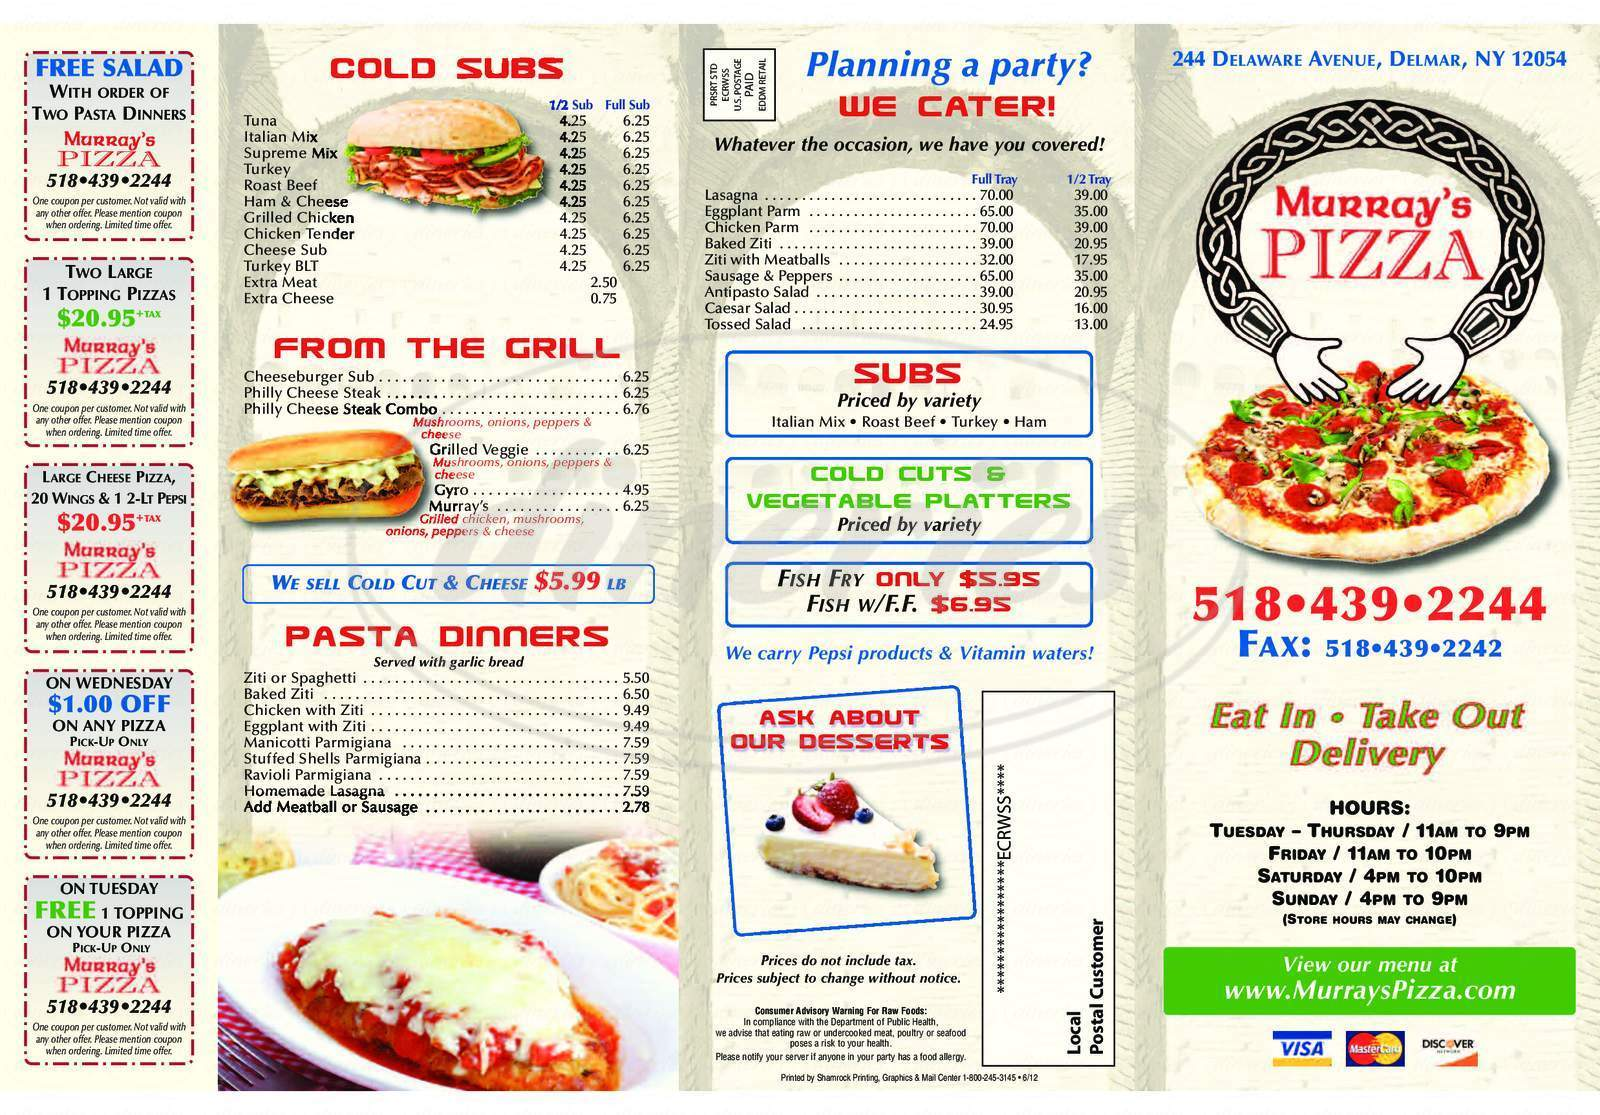 menu for Murray's Pizza